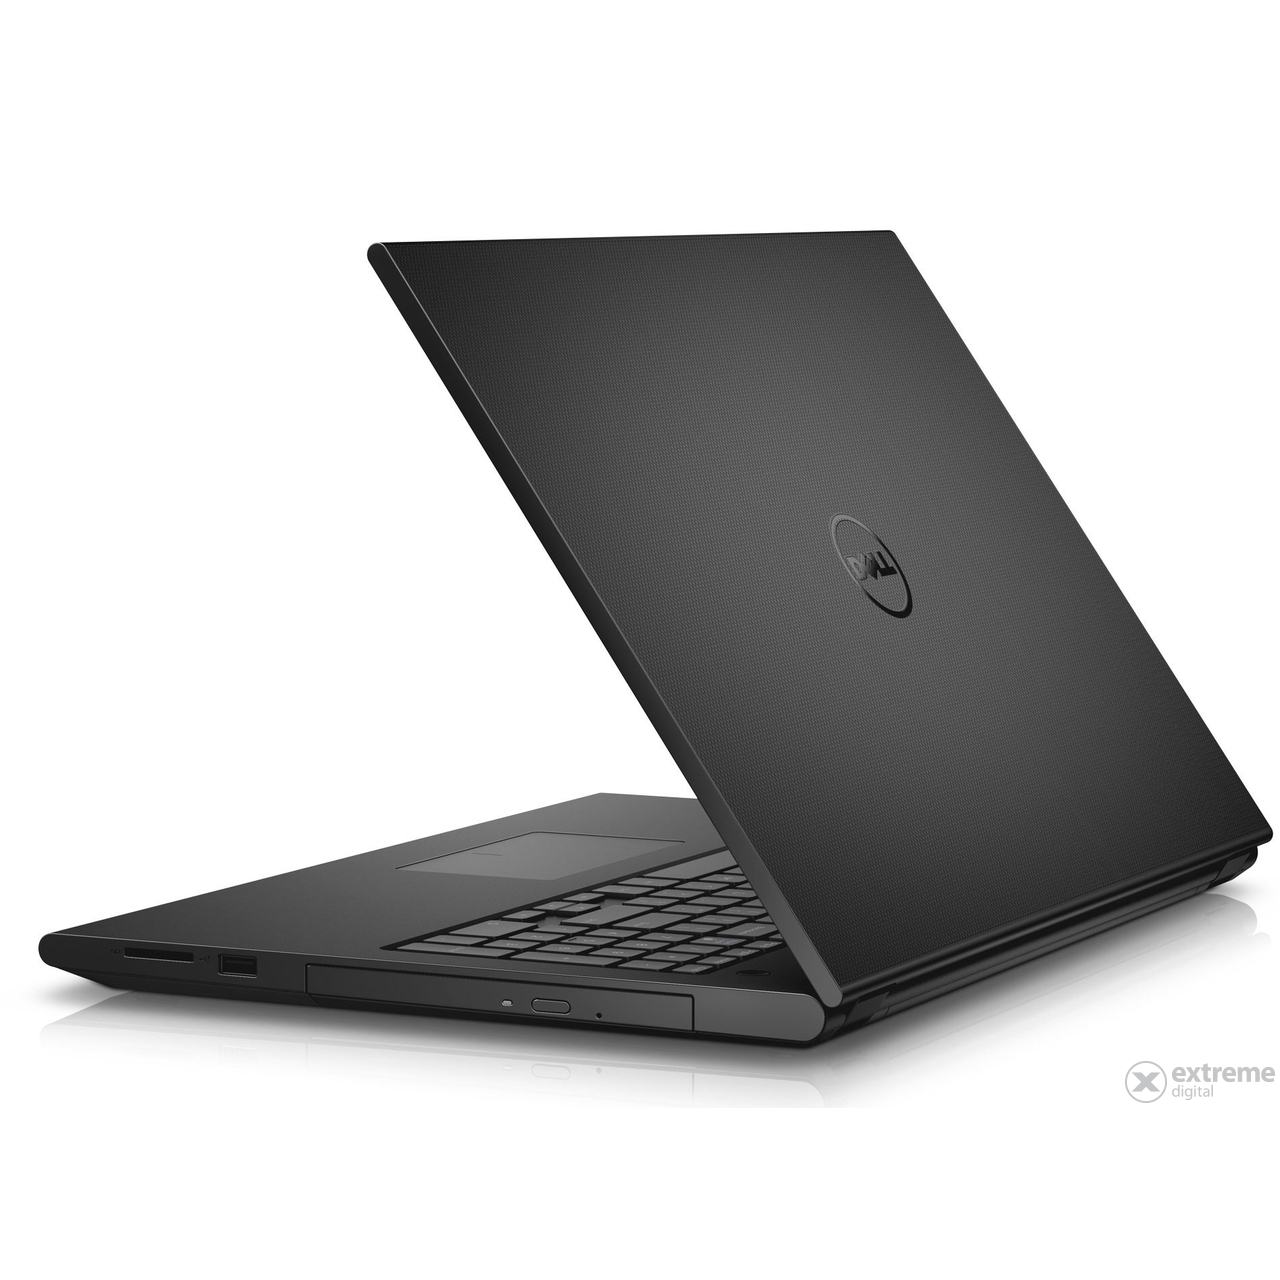 Лаптоп Dell Inspiron 3542-171159  Windows 8.1, черен